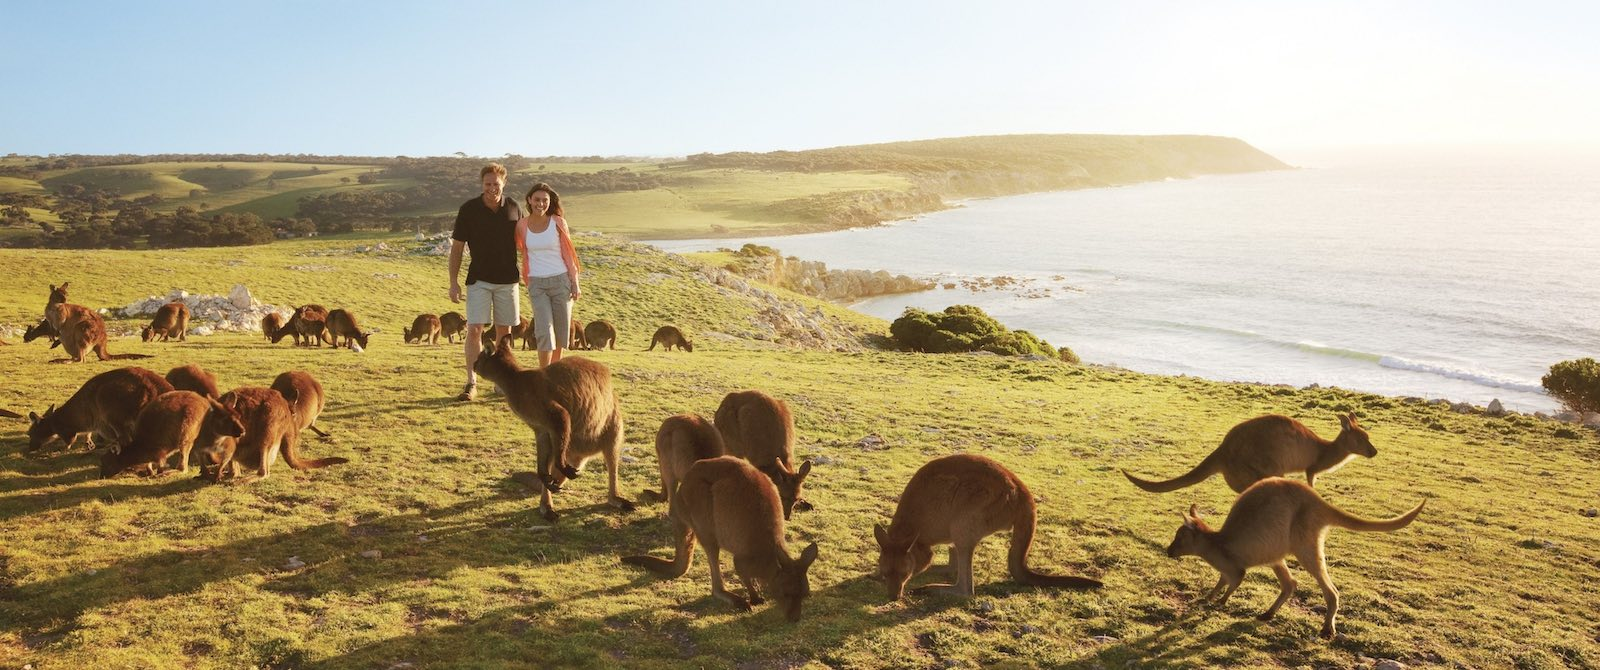 Wildlife Adventure Australia - Kangaroo Island Vacations